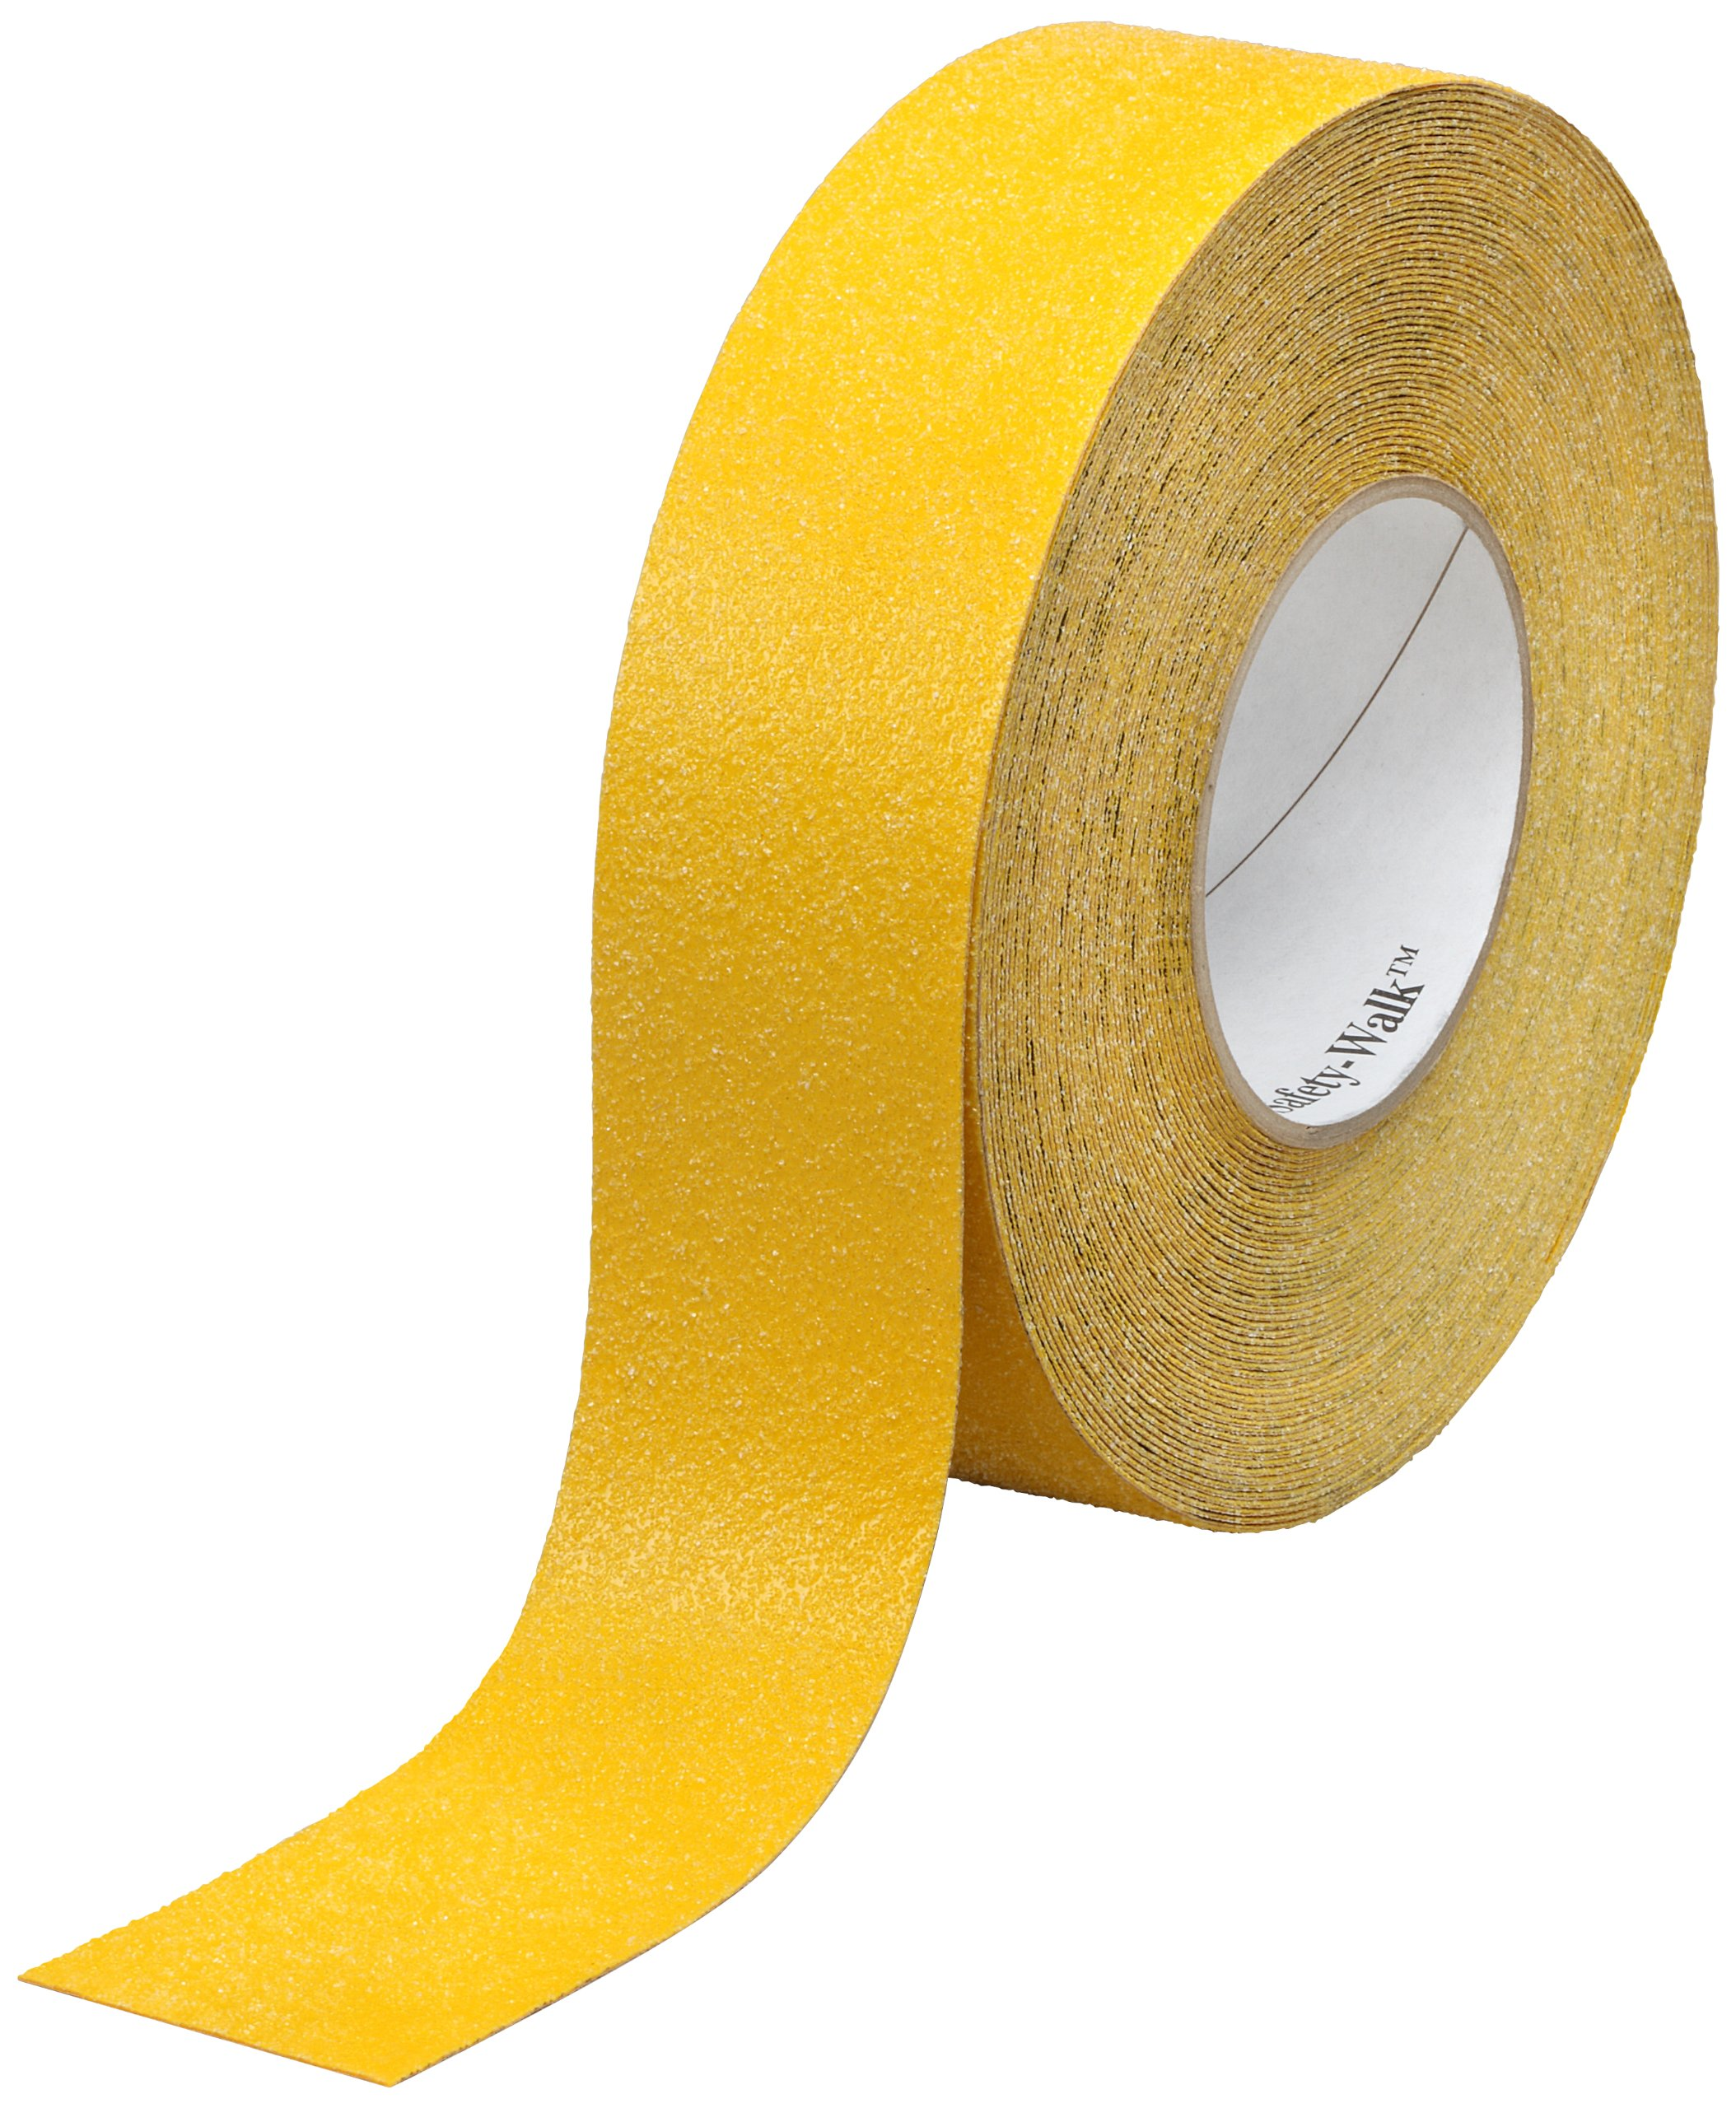 3M Safety-Walk Slip-Resistant Conformable Tapes and Treads 530, Safety Yellow, 2'' Width, 60' Length (Pack of 2 Rolls)